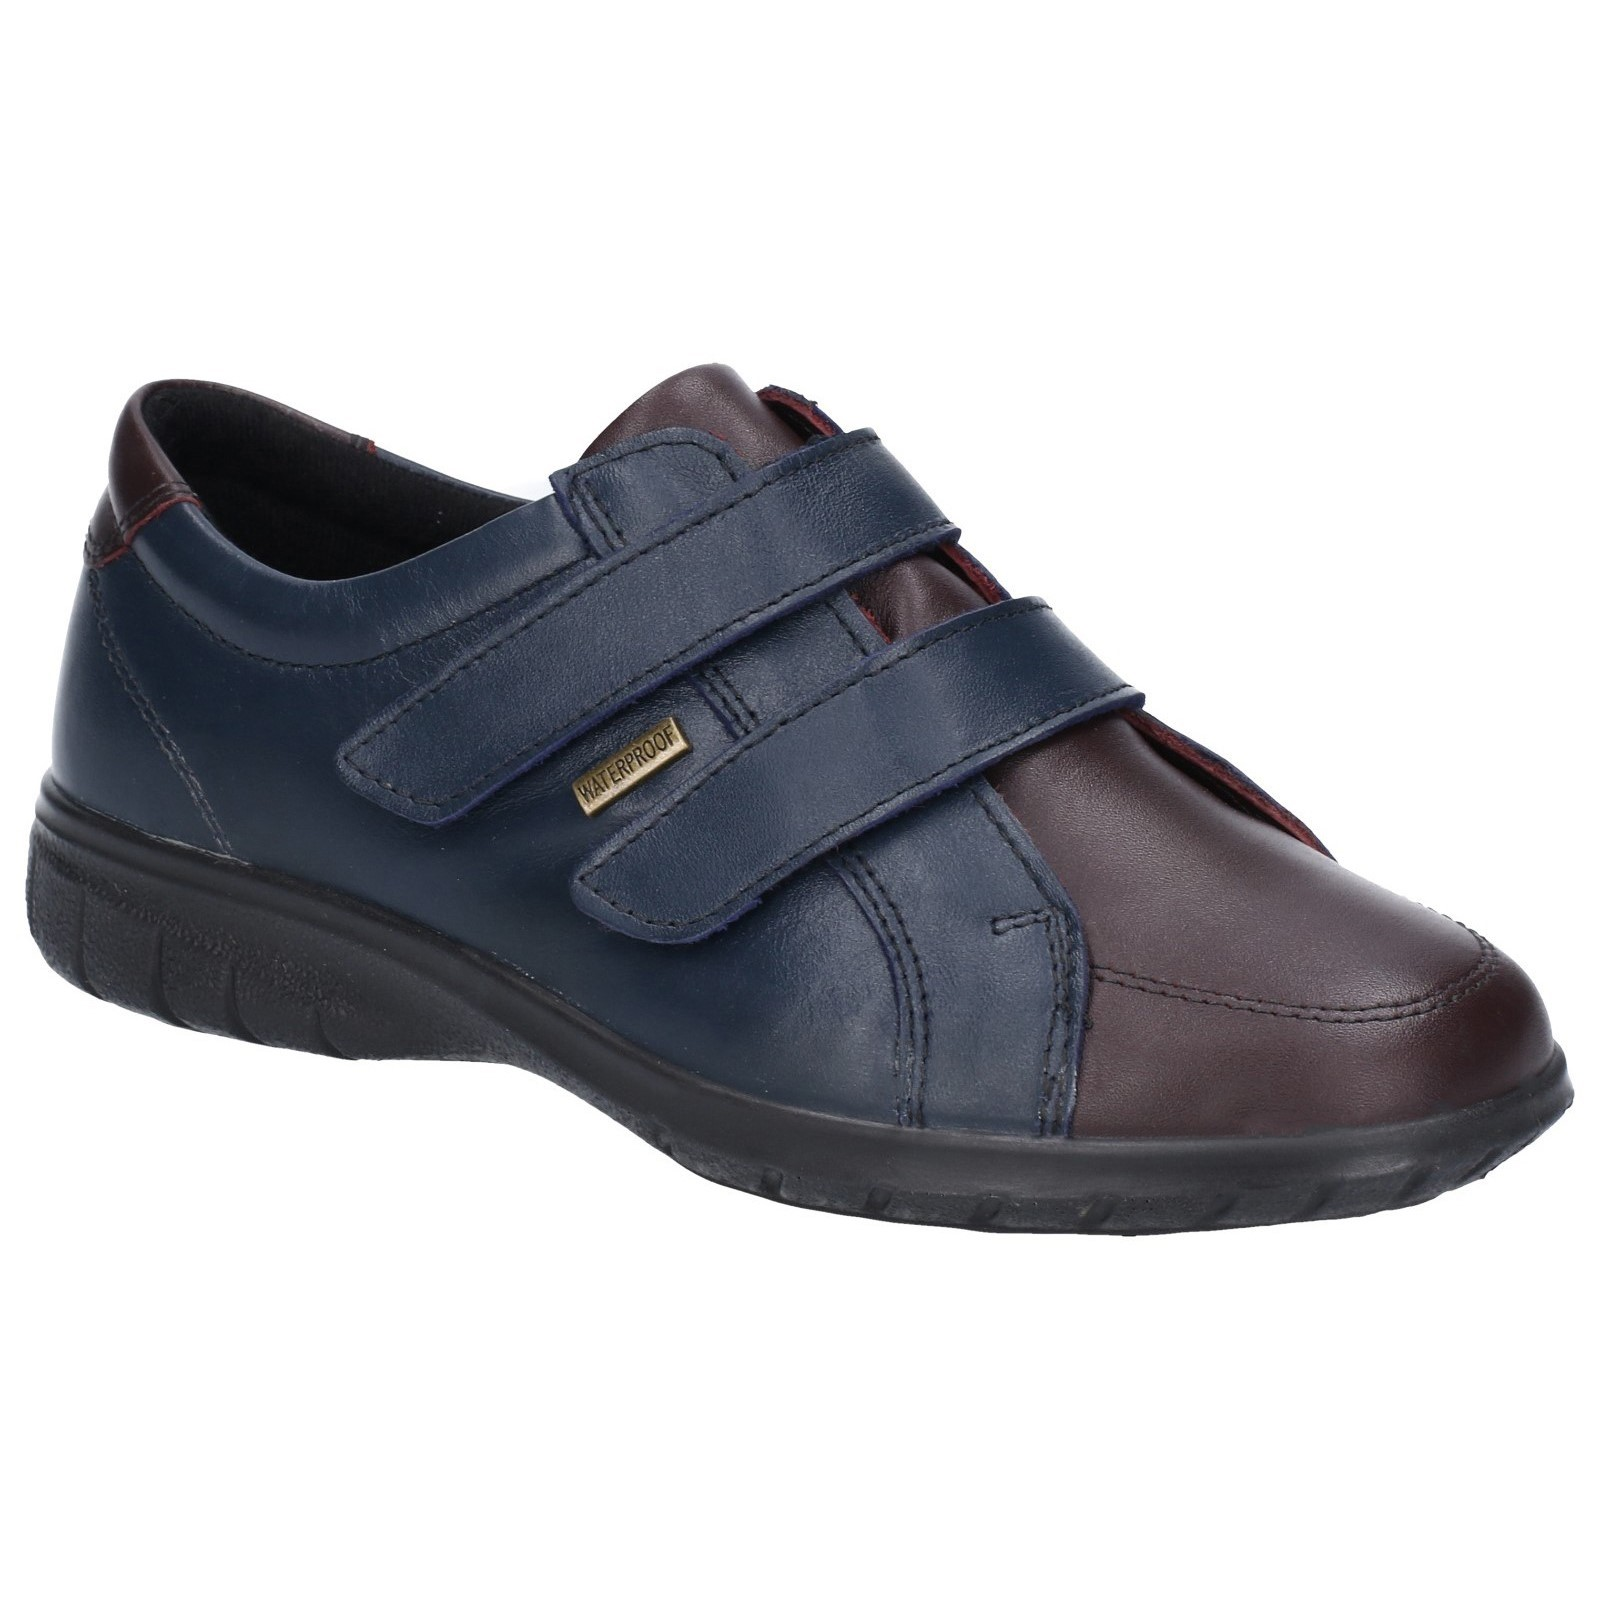 Cotswold Womens Haythrop Tough Fastening shoes